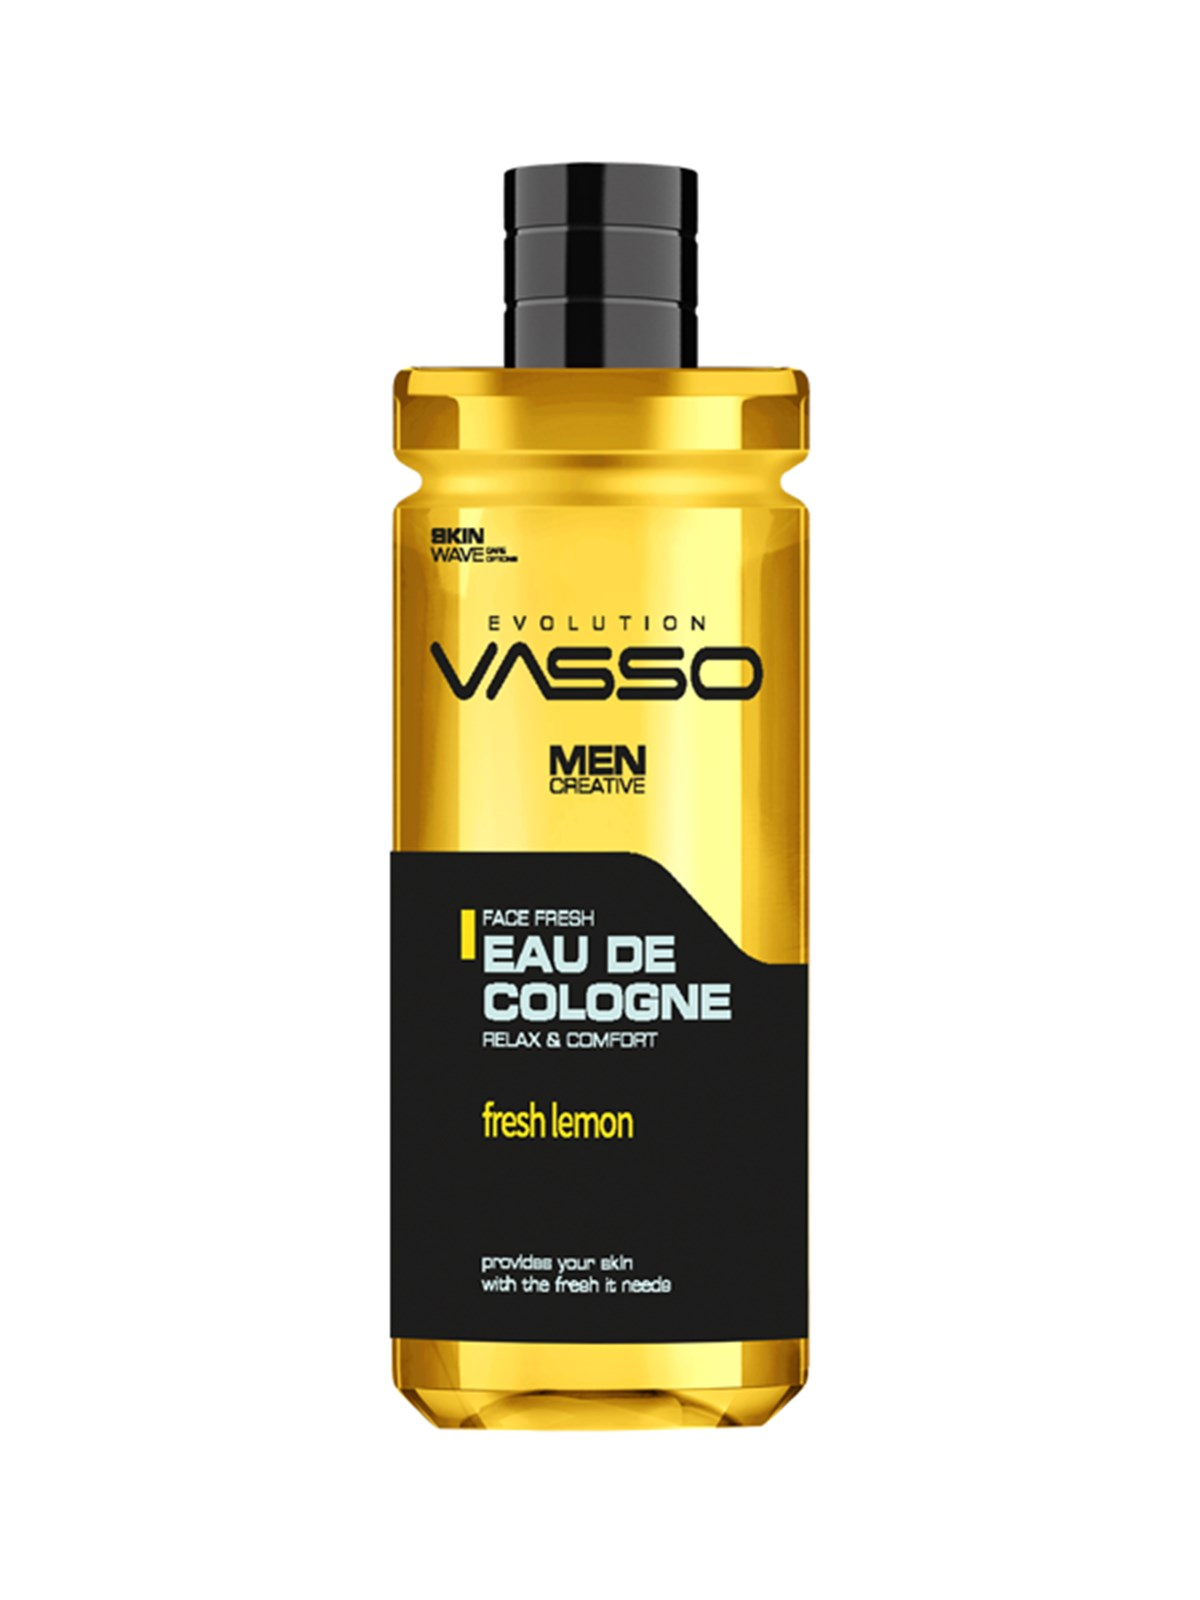 eau de cologne fresh lemon 892c